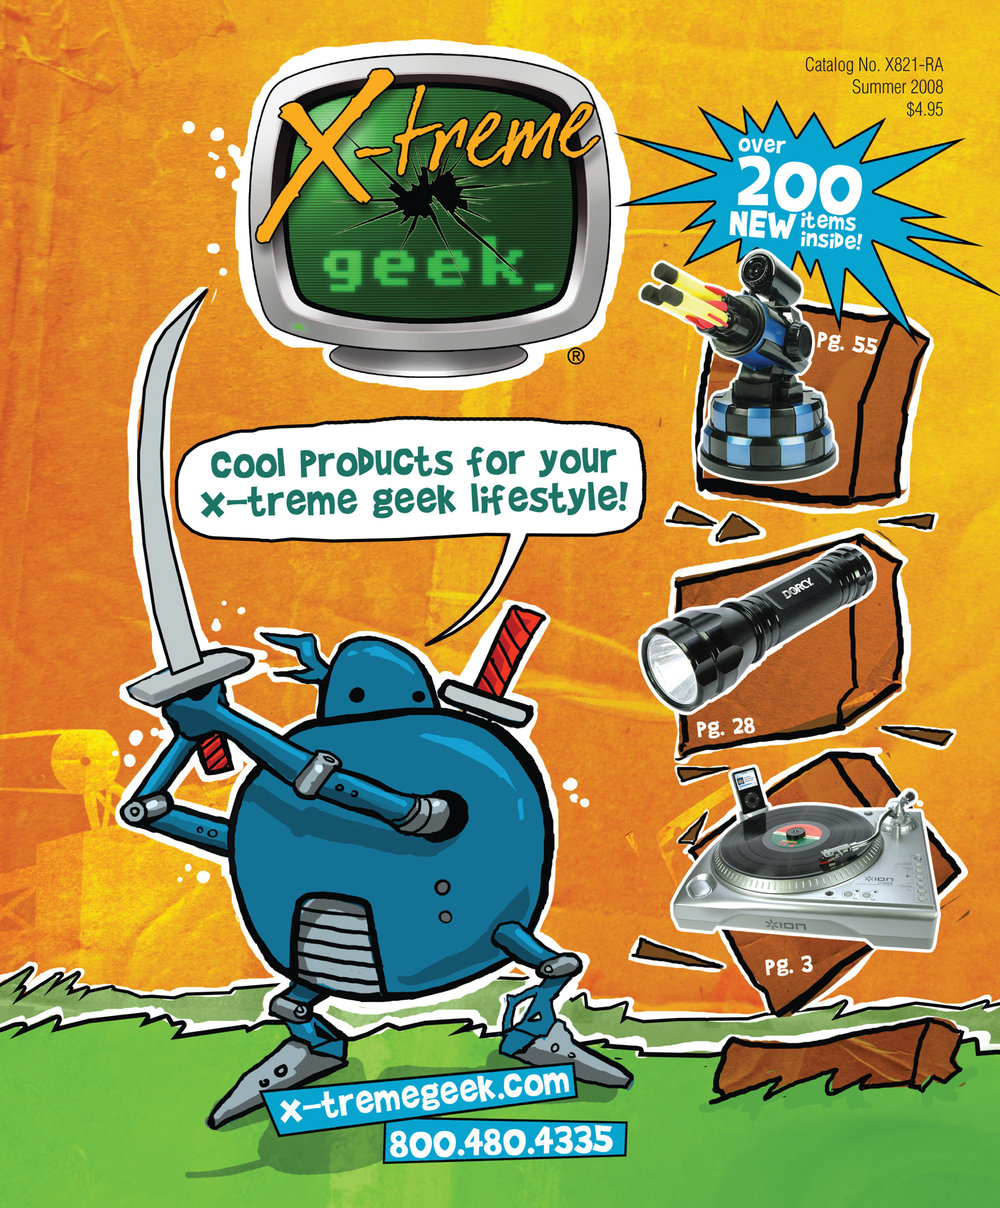 2009. X-treme Geek catalog cover. Art direction, illustration, and design. © E-filliate Inc.